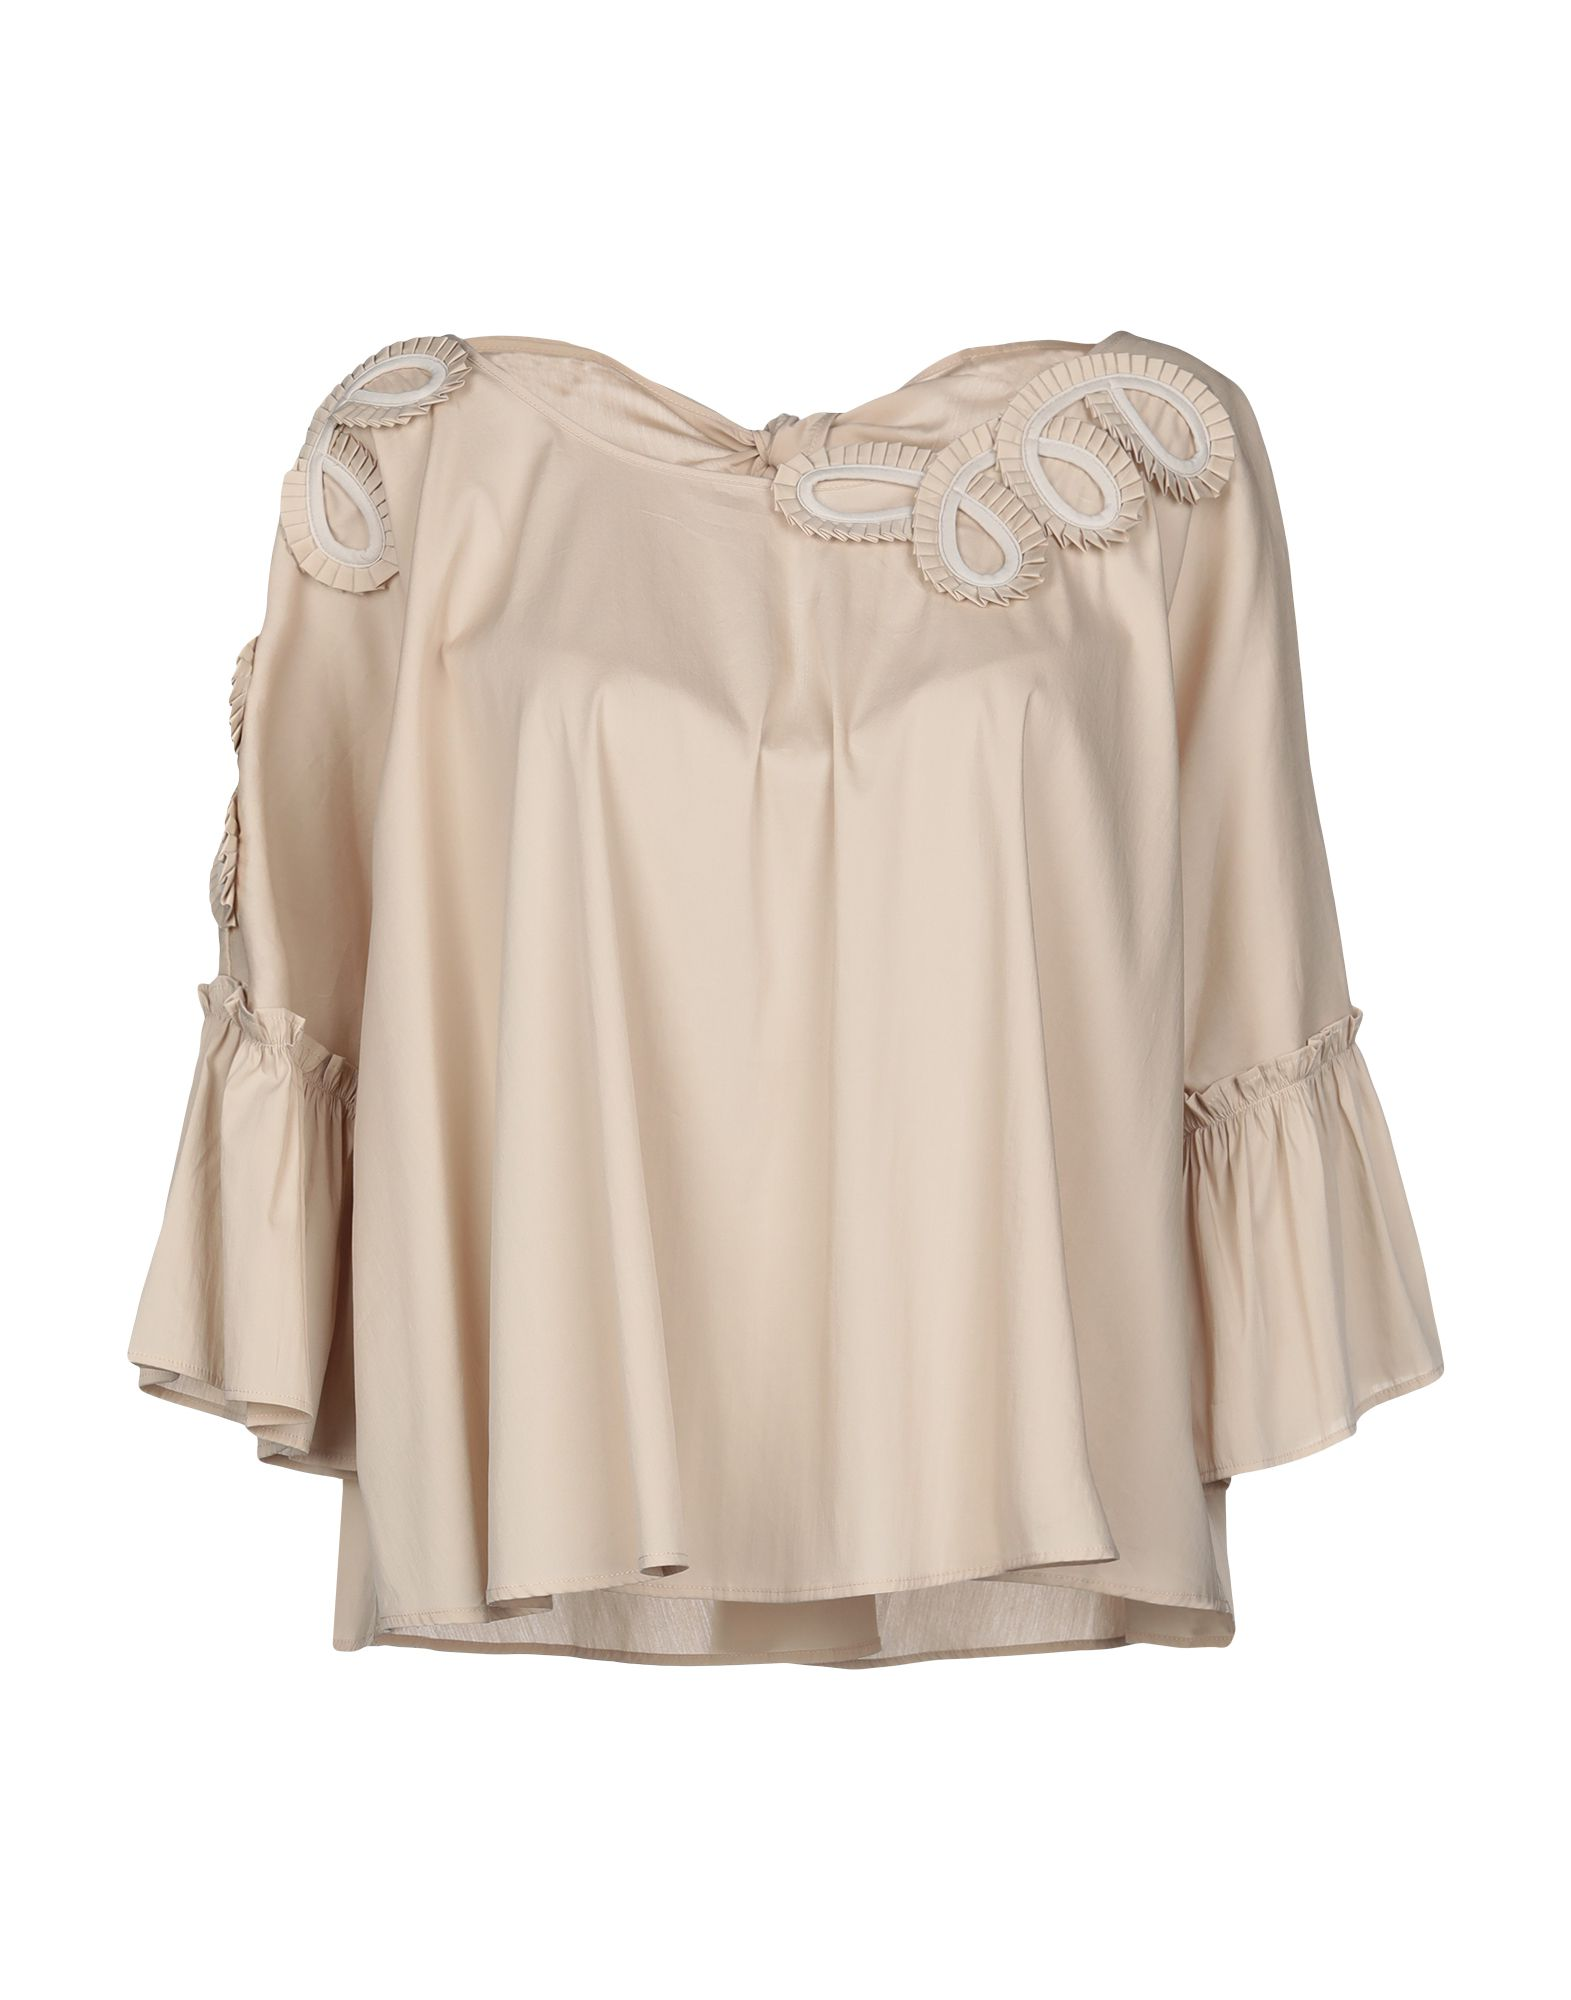 669e74c9e613ab Tricot Chic Blouse - Women Tricot Chic Blouses online on YOOX United ...